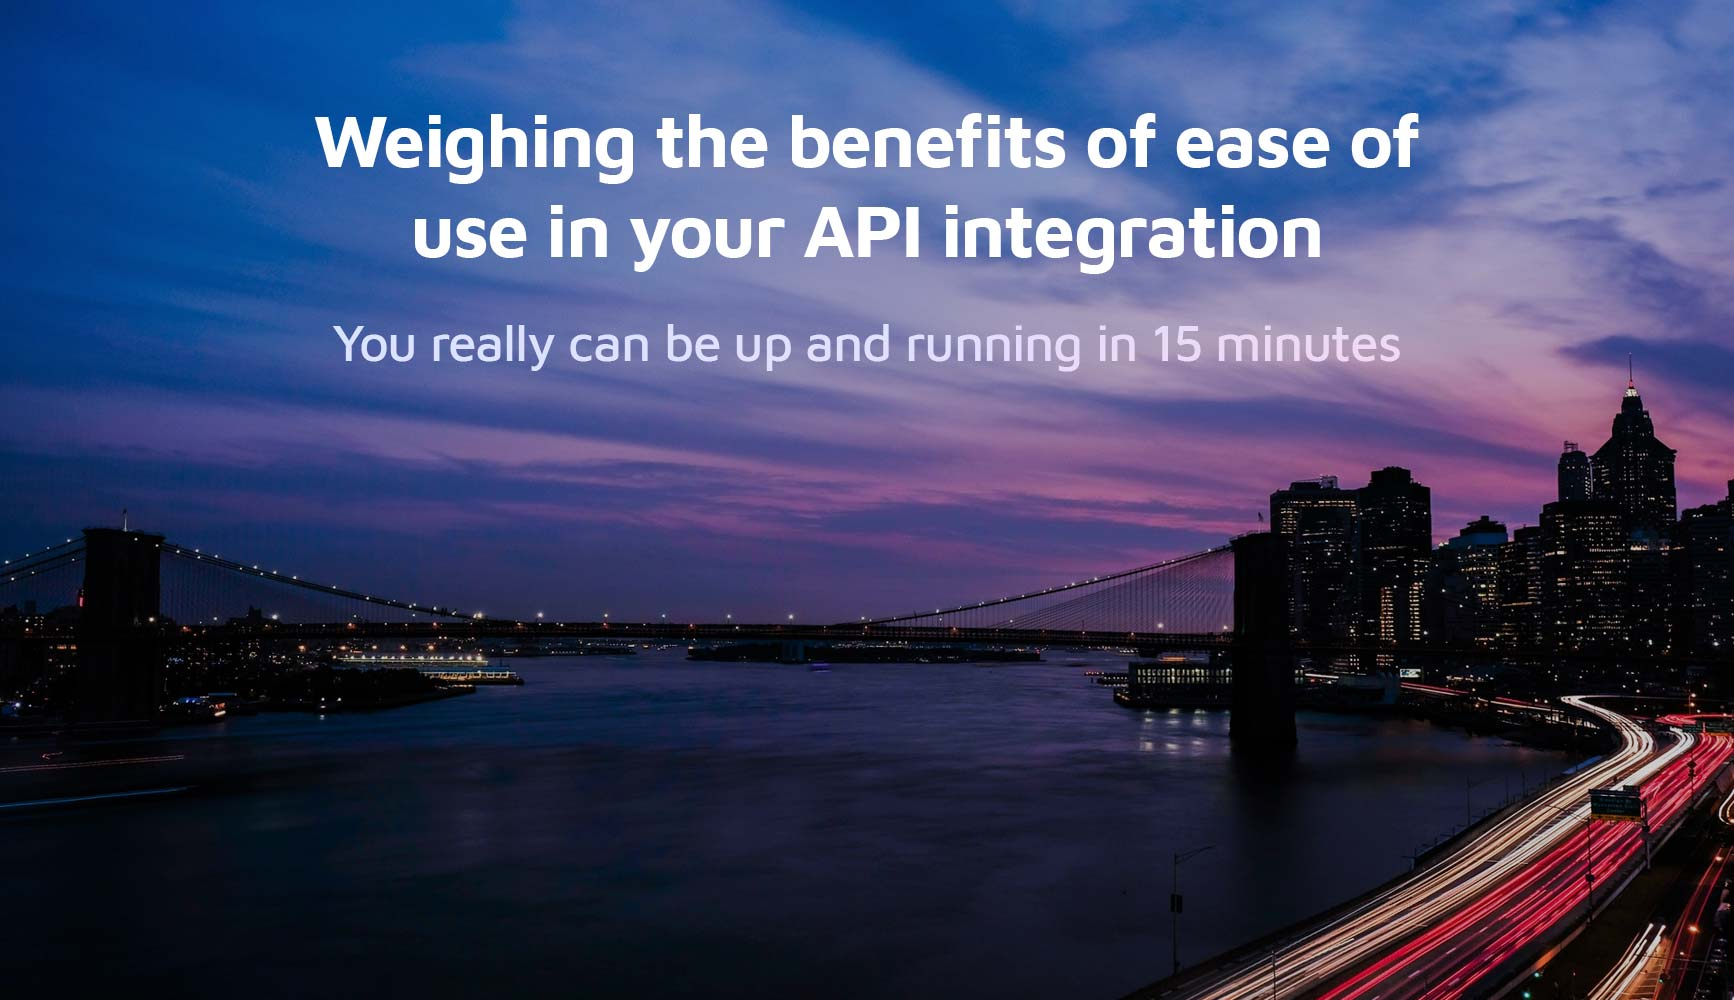 Weighing the benefits of ease of use in your API integration